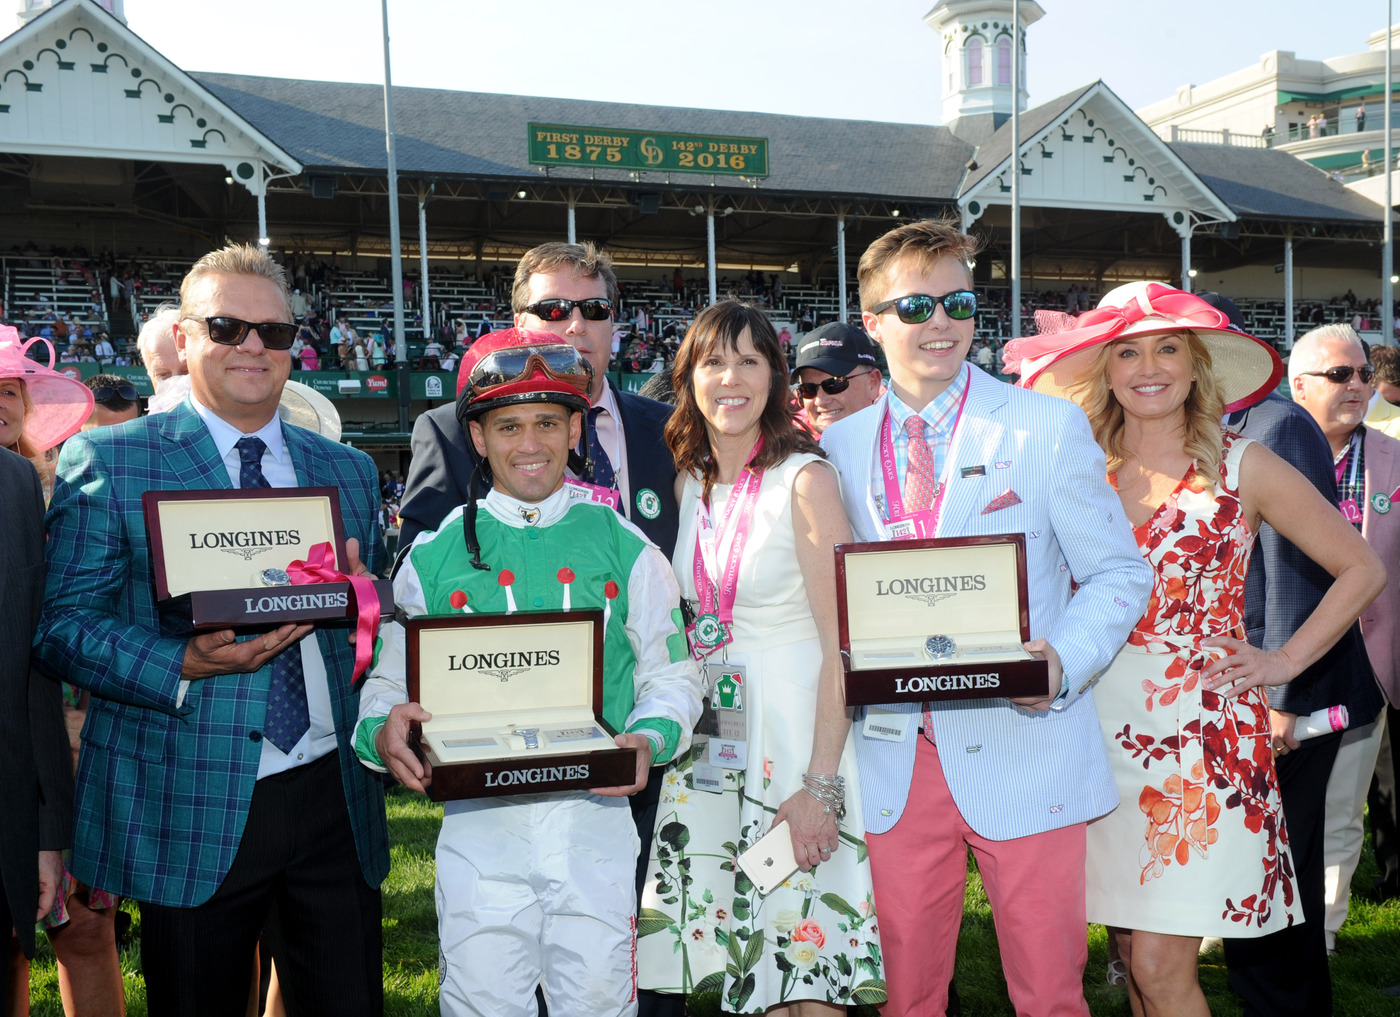 Longines Flat Racing Event: Winner of the 2016 Longines Kentucky Oaks Race Celebrated by Swiss Watch Brand Longines in front of record crowd 6